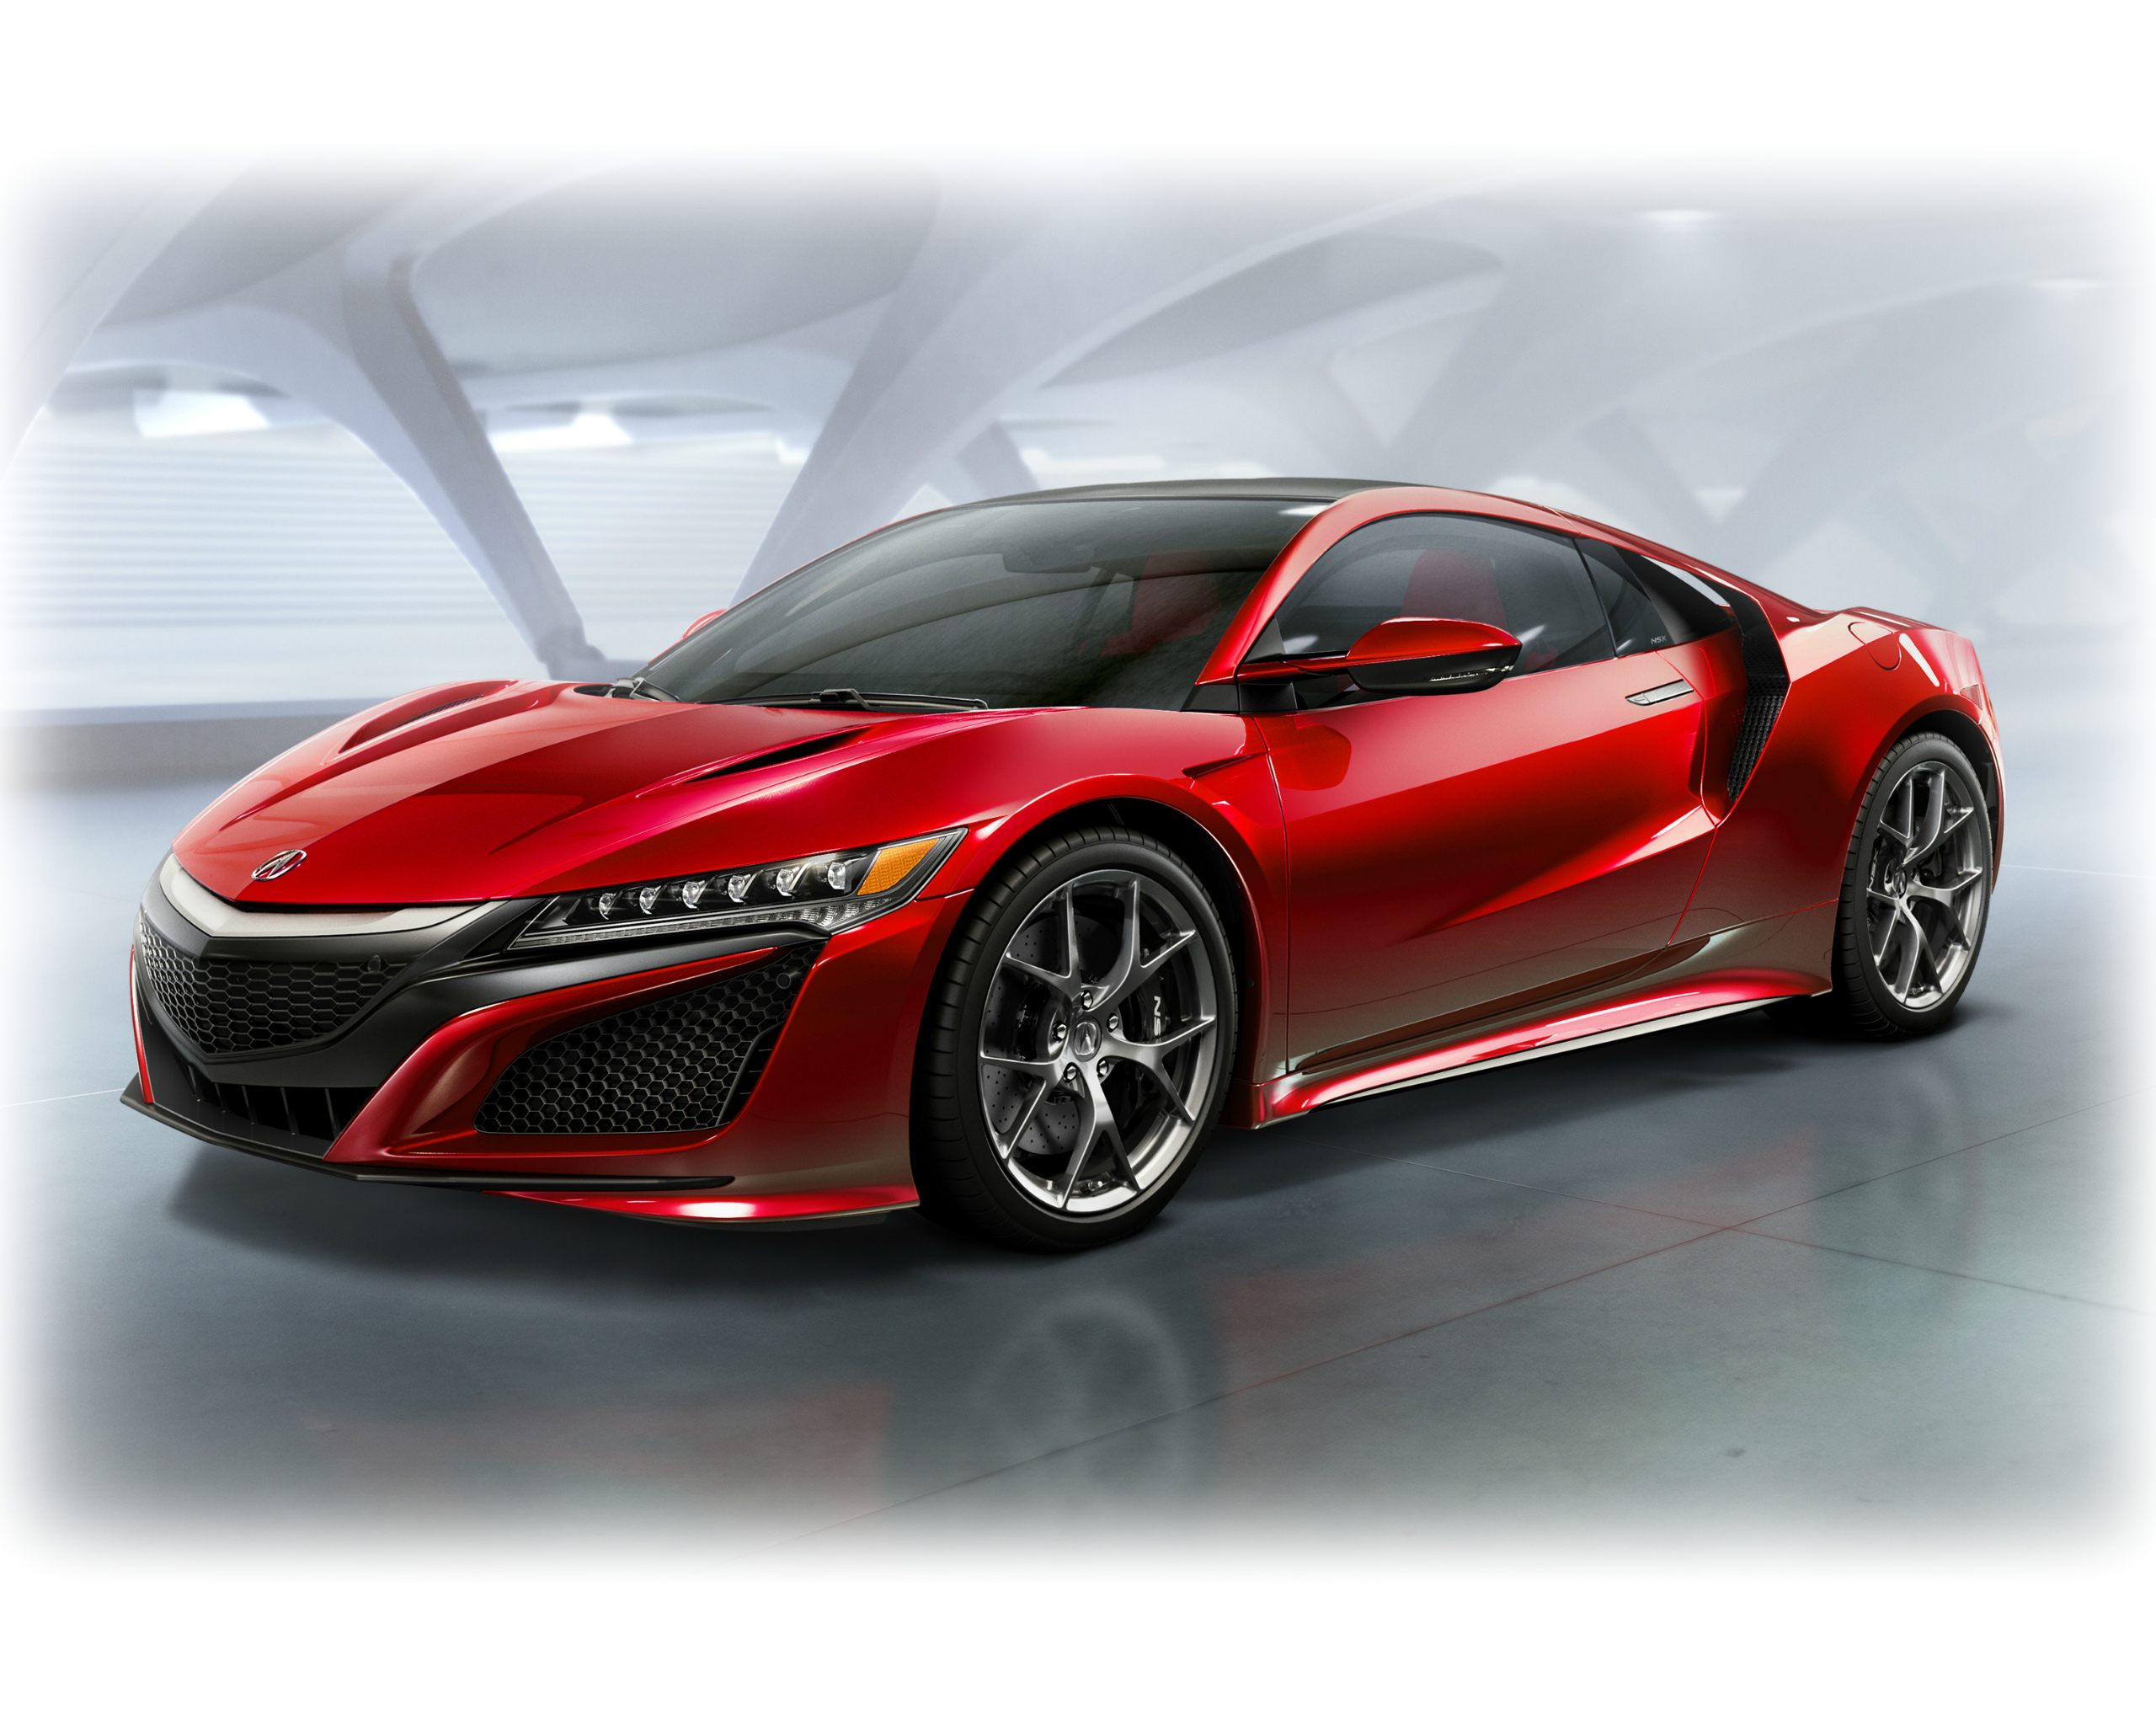 2016 Honda Acura NSX Car wallpaper 2560x2048 2560x2048